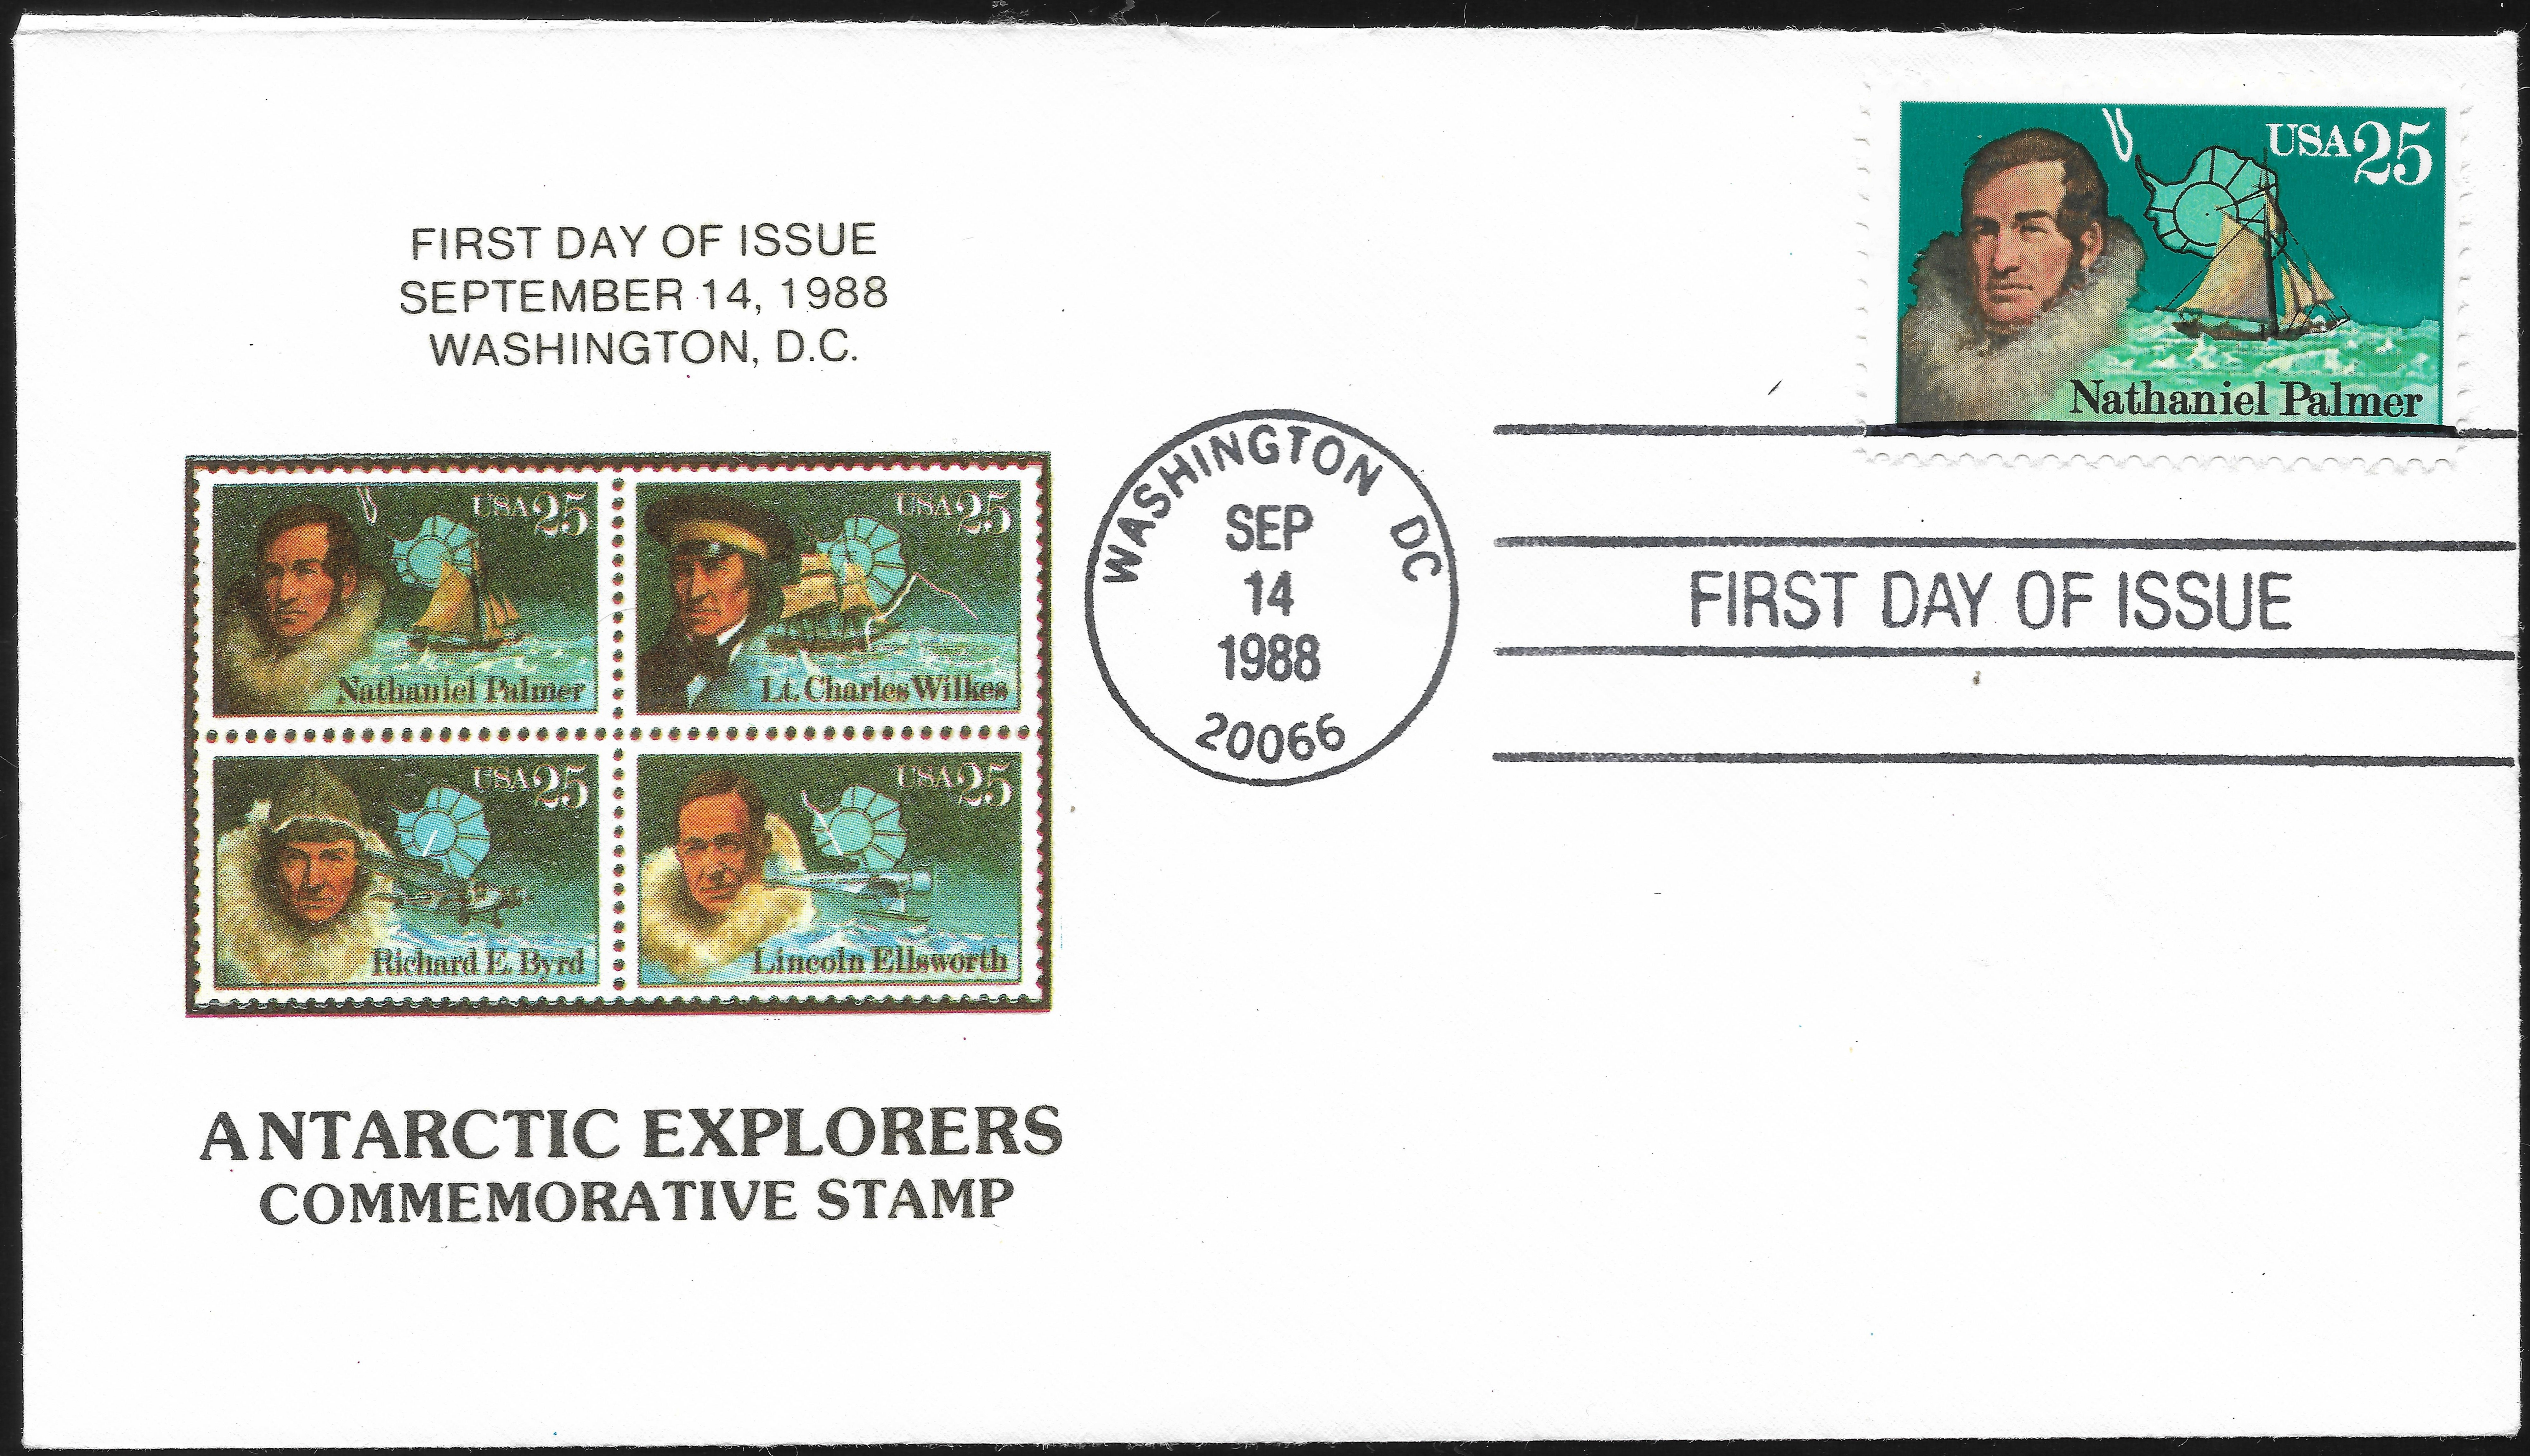 United States - Scott #2386 (1988) first day cover